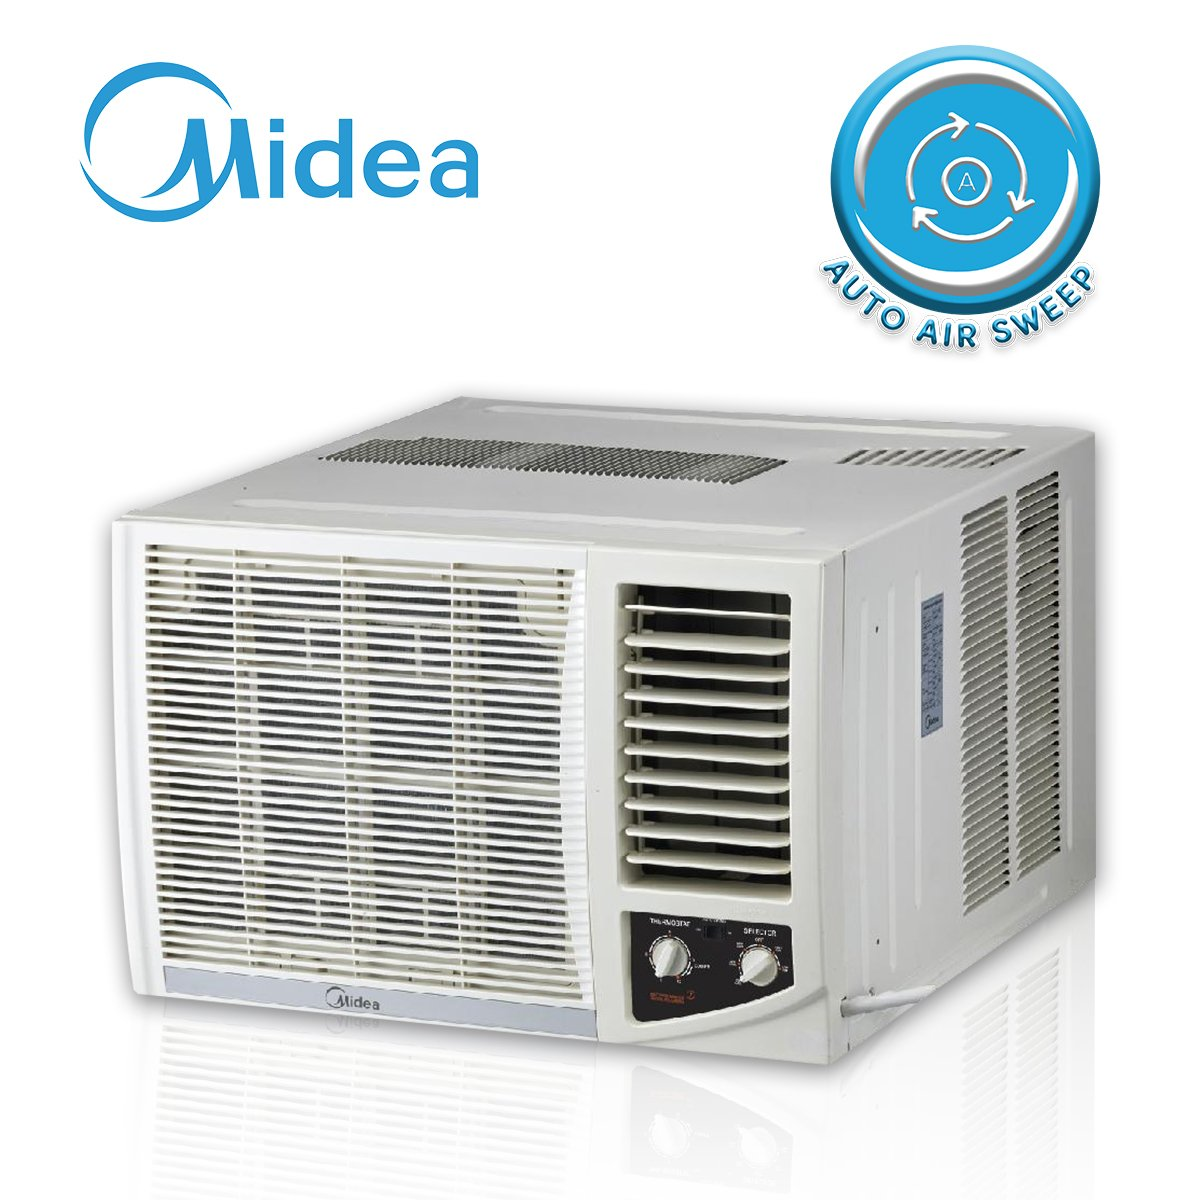 Midea 1.0 HP Window Type Non Inverter Aircon - Manual